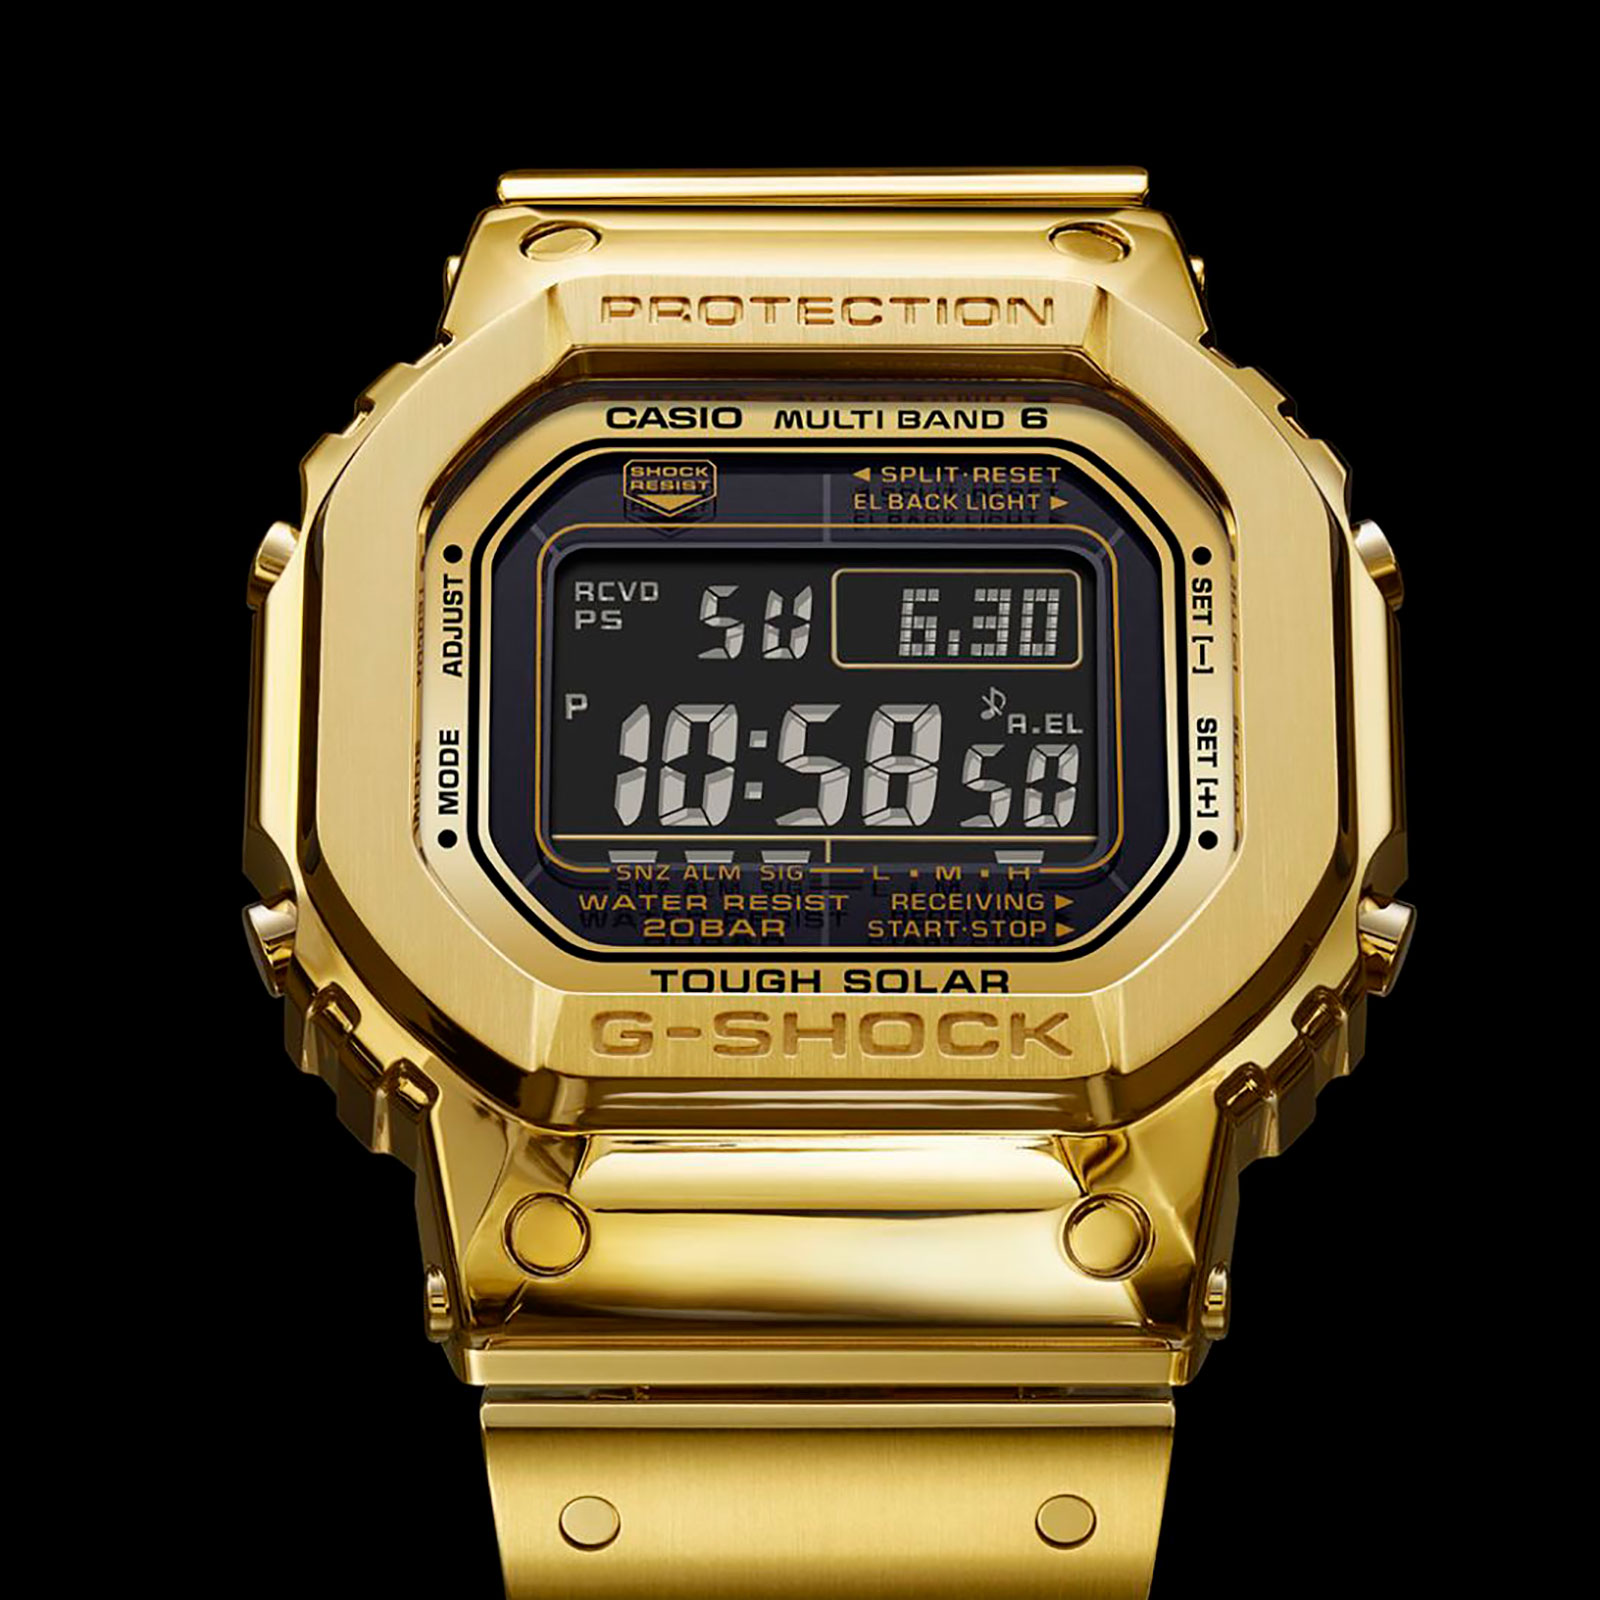 Pure_Gold_G-SHOCK_18k_G-D5000-9JR-1